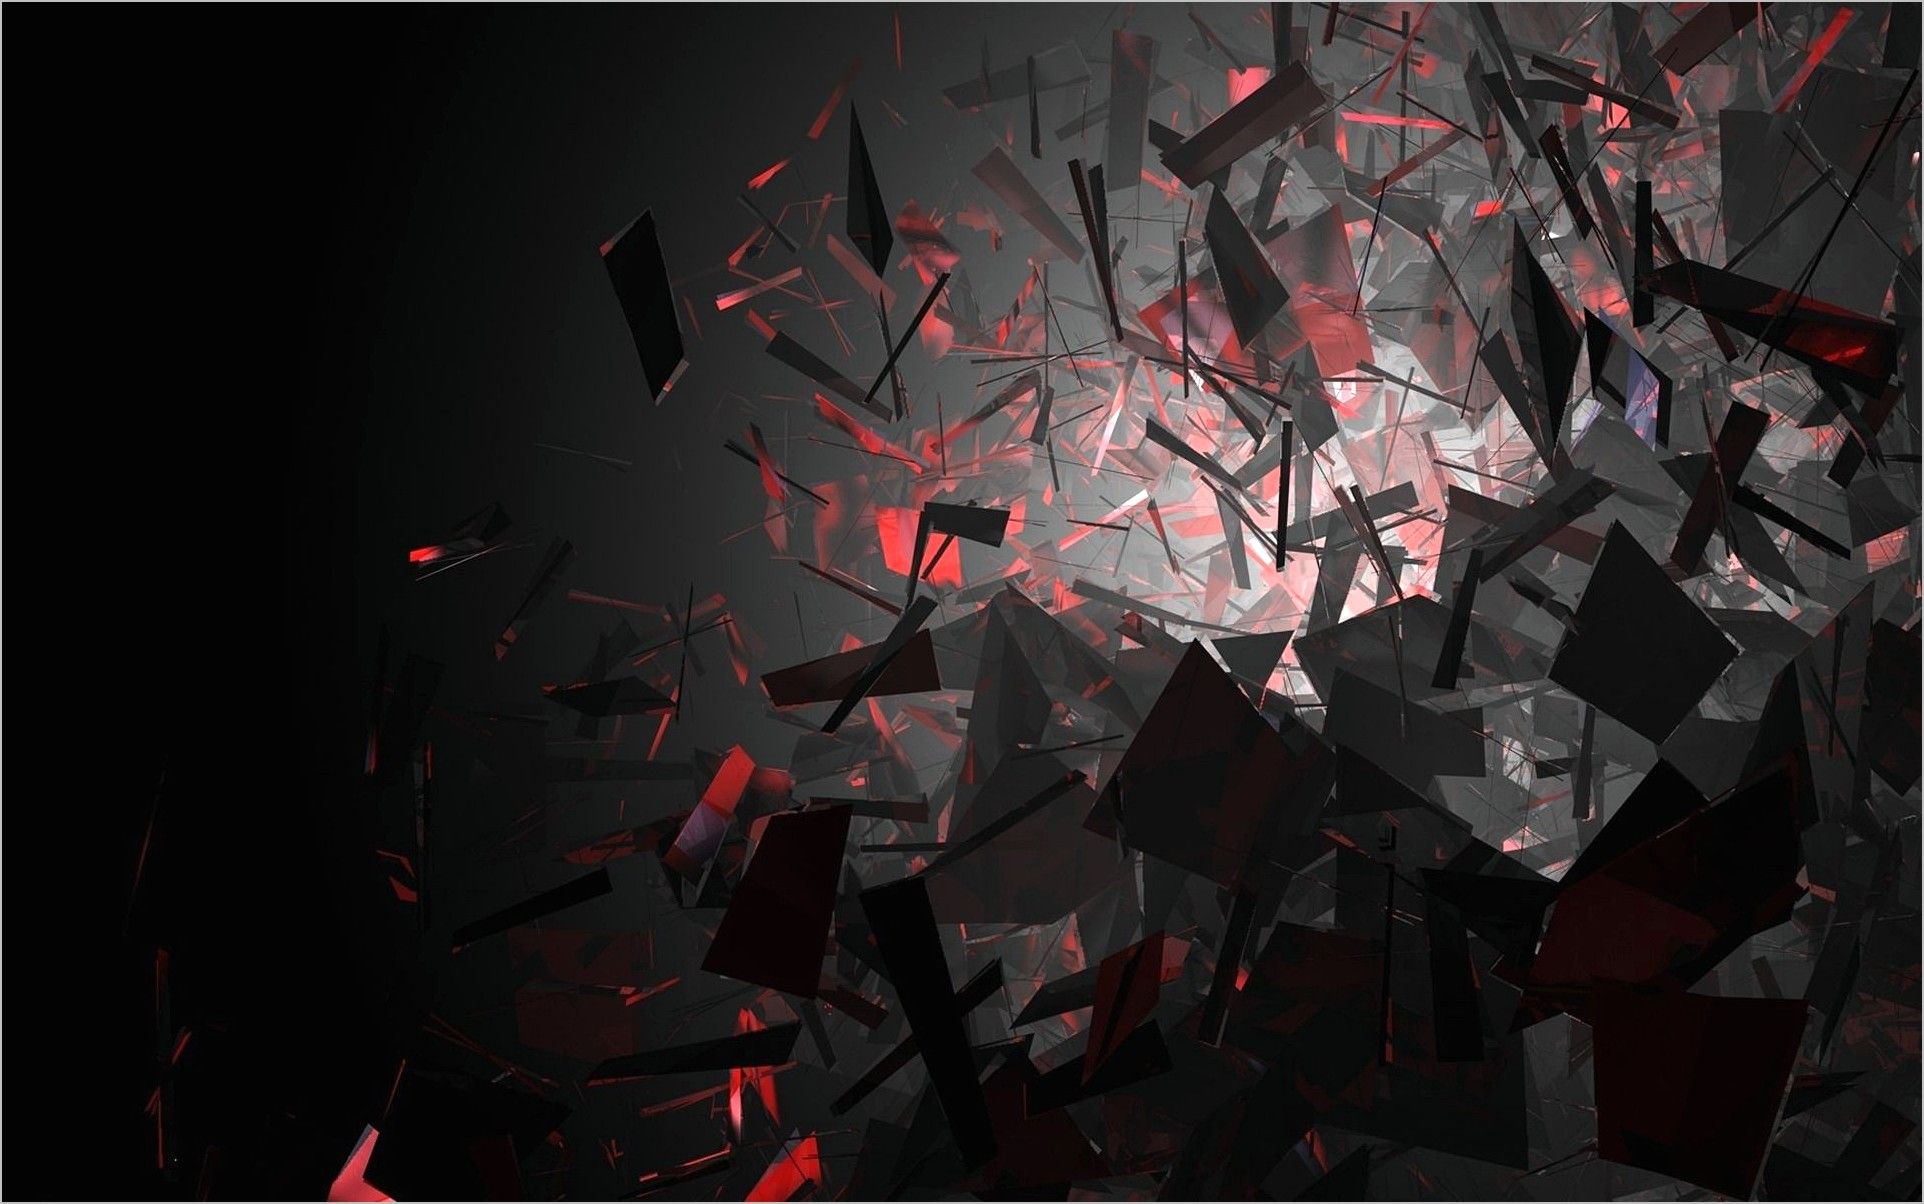 Wallpaper Black And Red 4k In 2020 Red And Black Wallpaper Red Wallpaper Dark Red Wallpaper